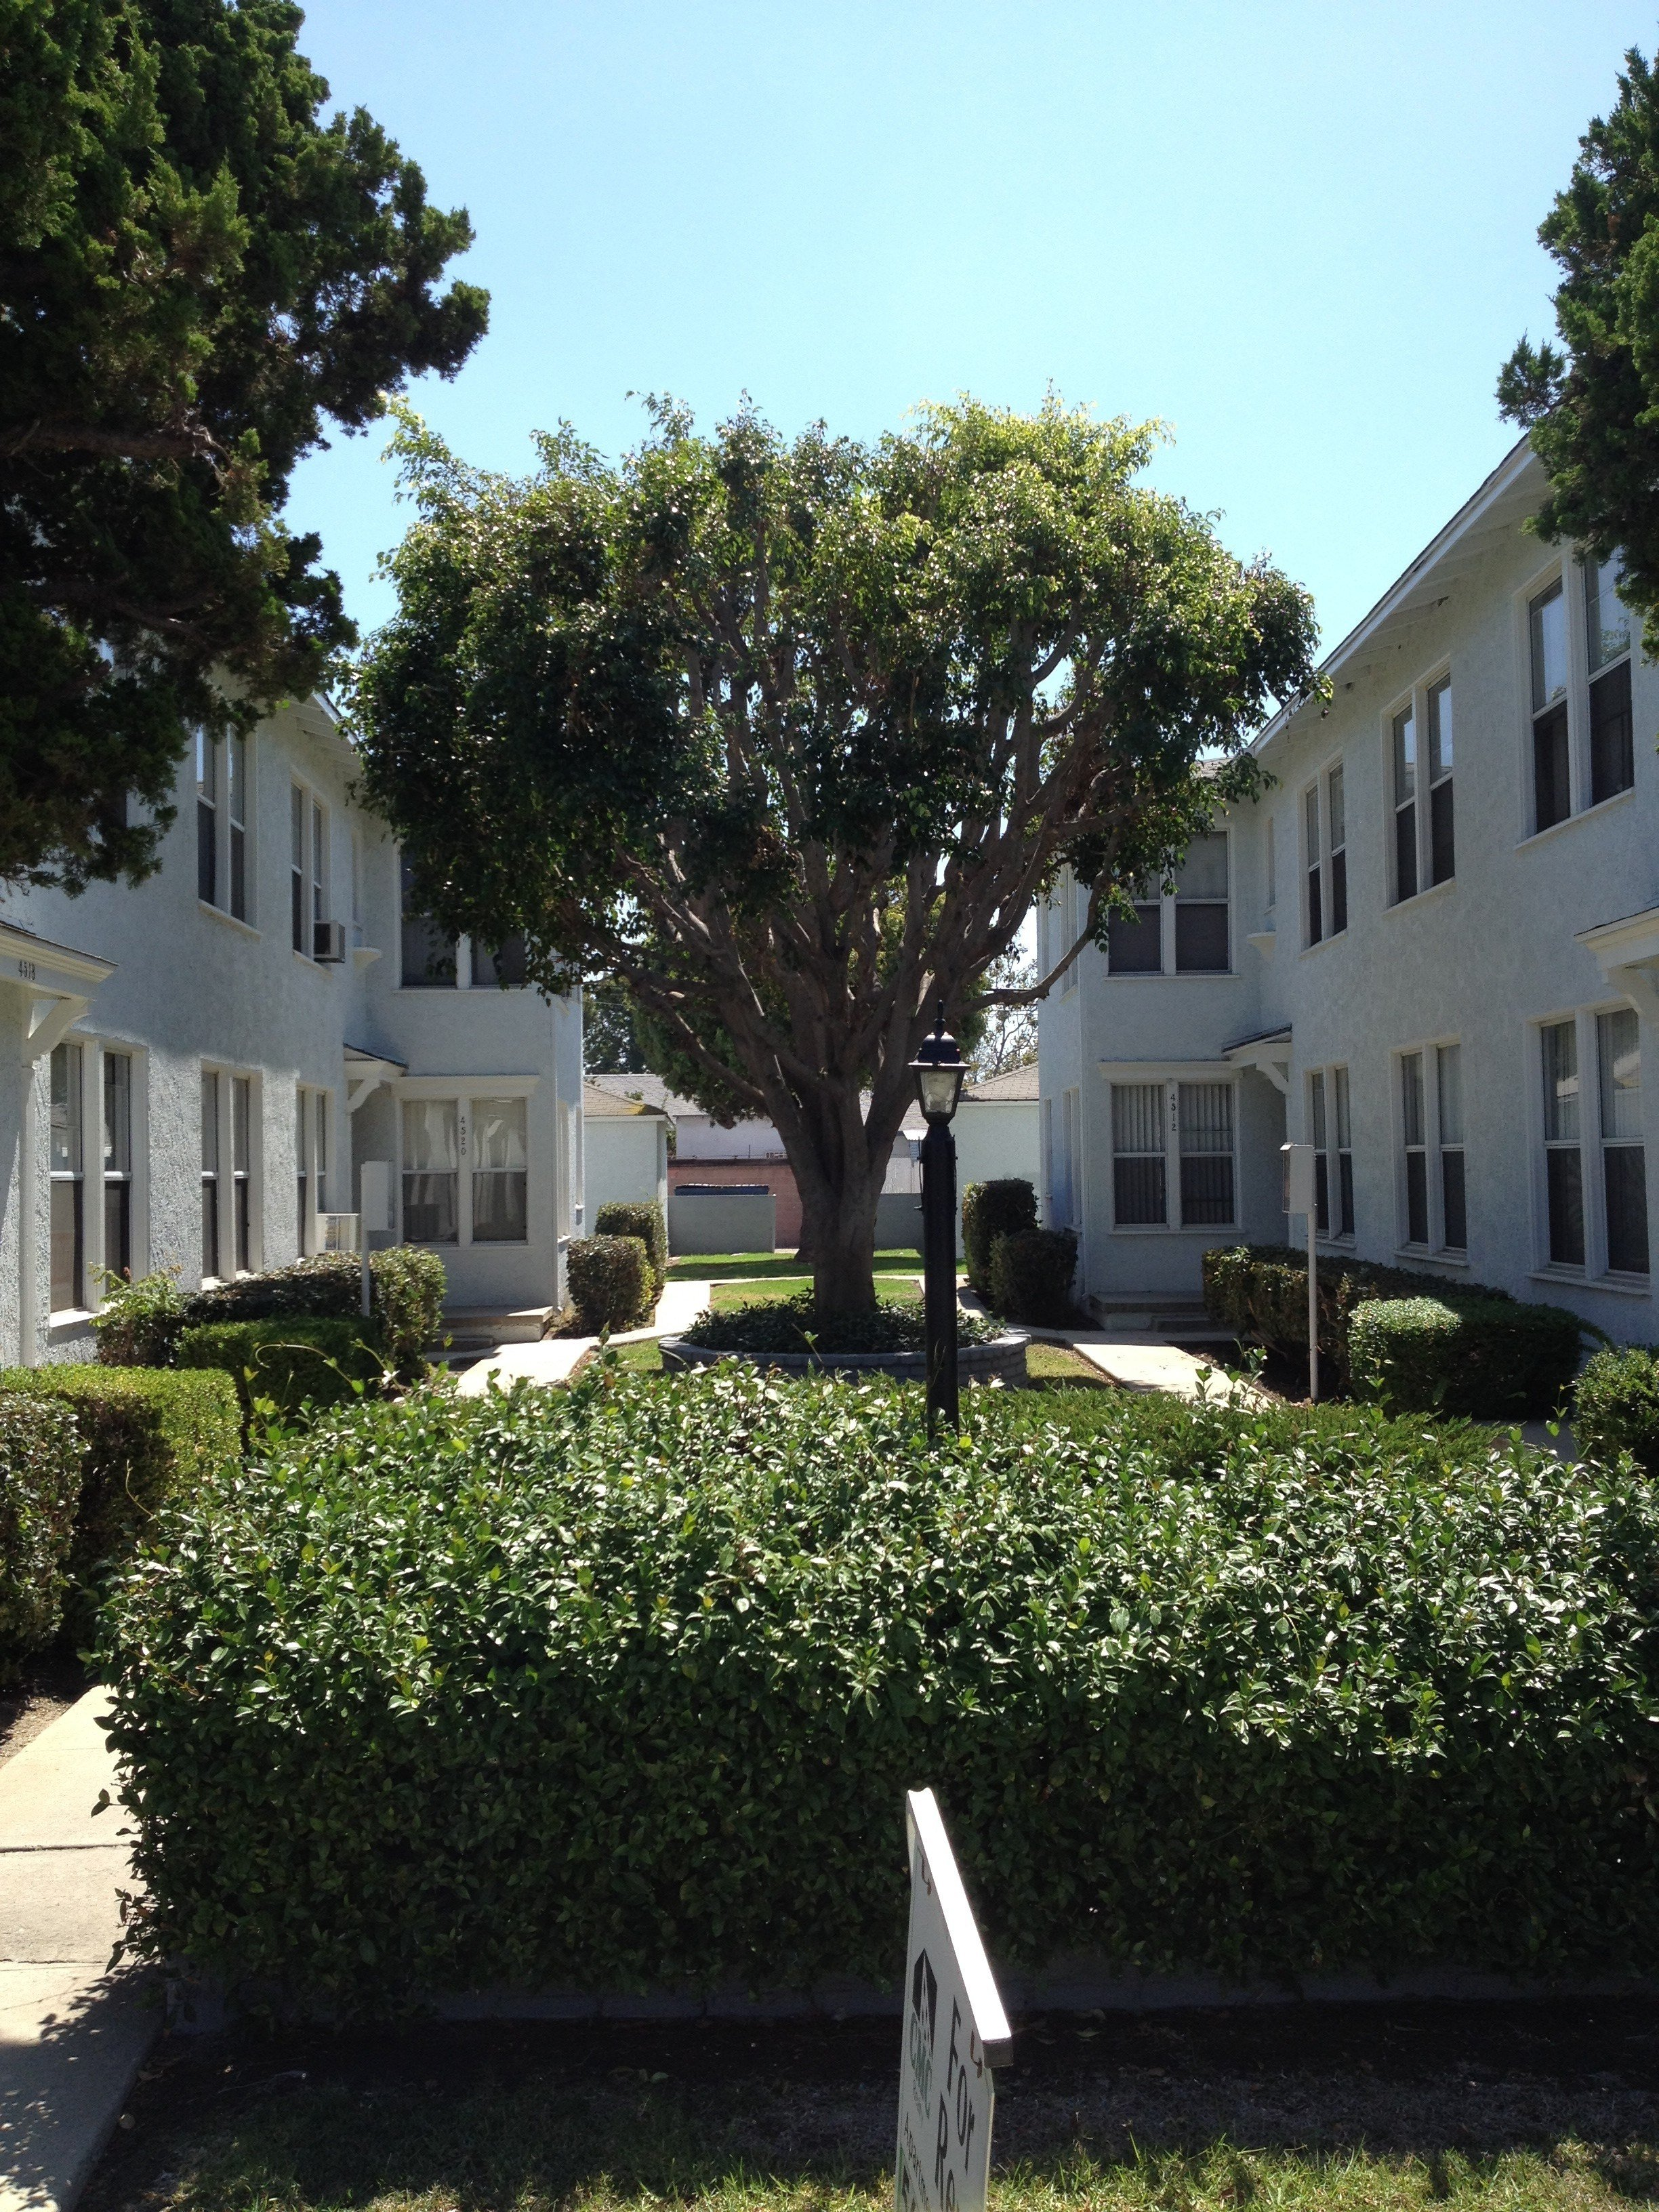 Best 4520 N Banner Dr Long Beach Ca 90807 1 Bedroom Apartment For Rent For 1 395 Month Zumper With Pictures